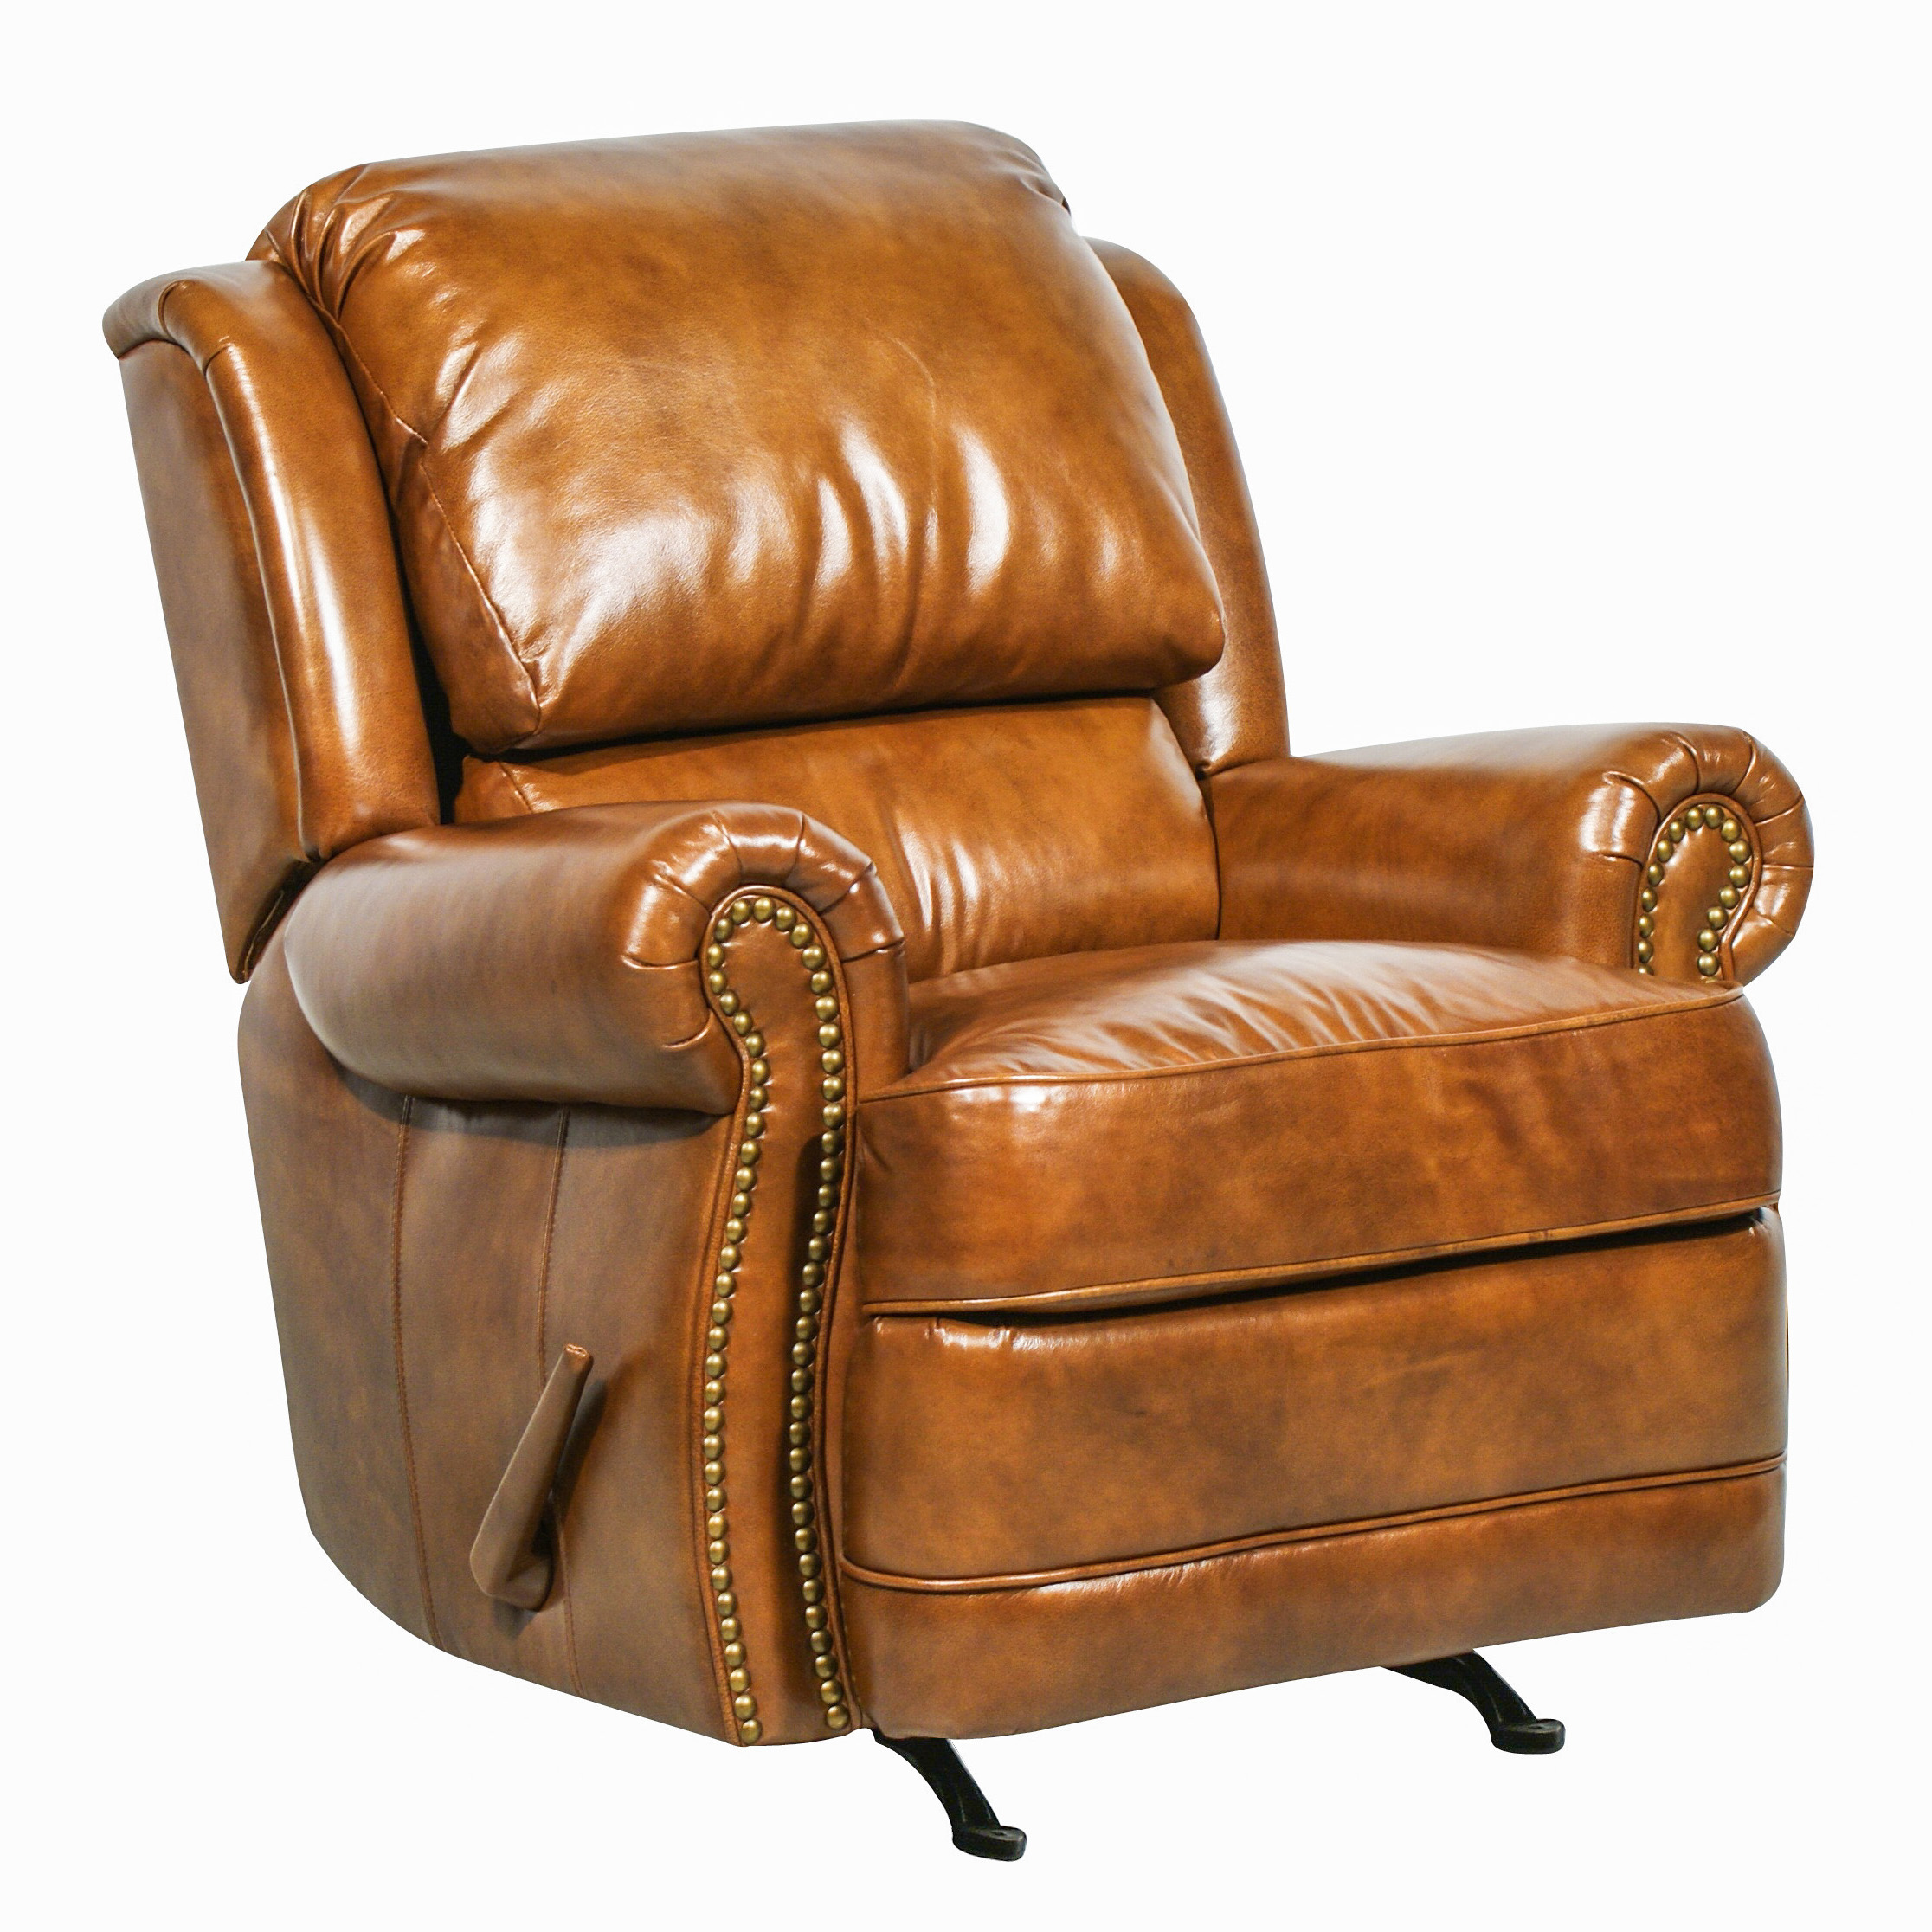 lounge chair leather where can i buy a zero gravity barcalounger regency ii recliner